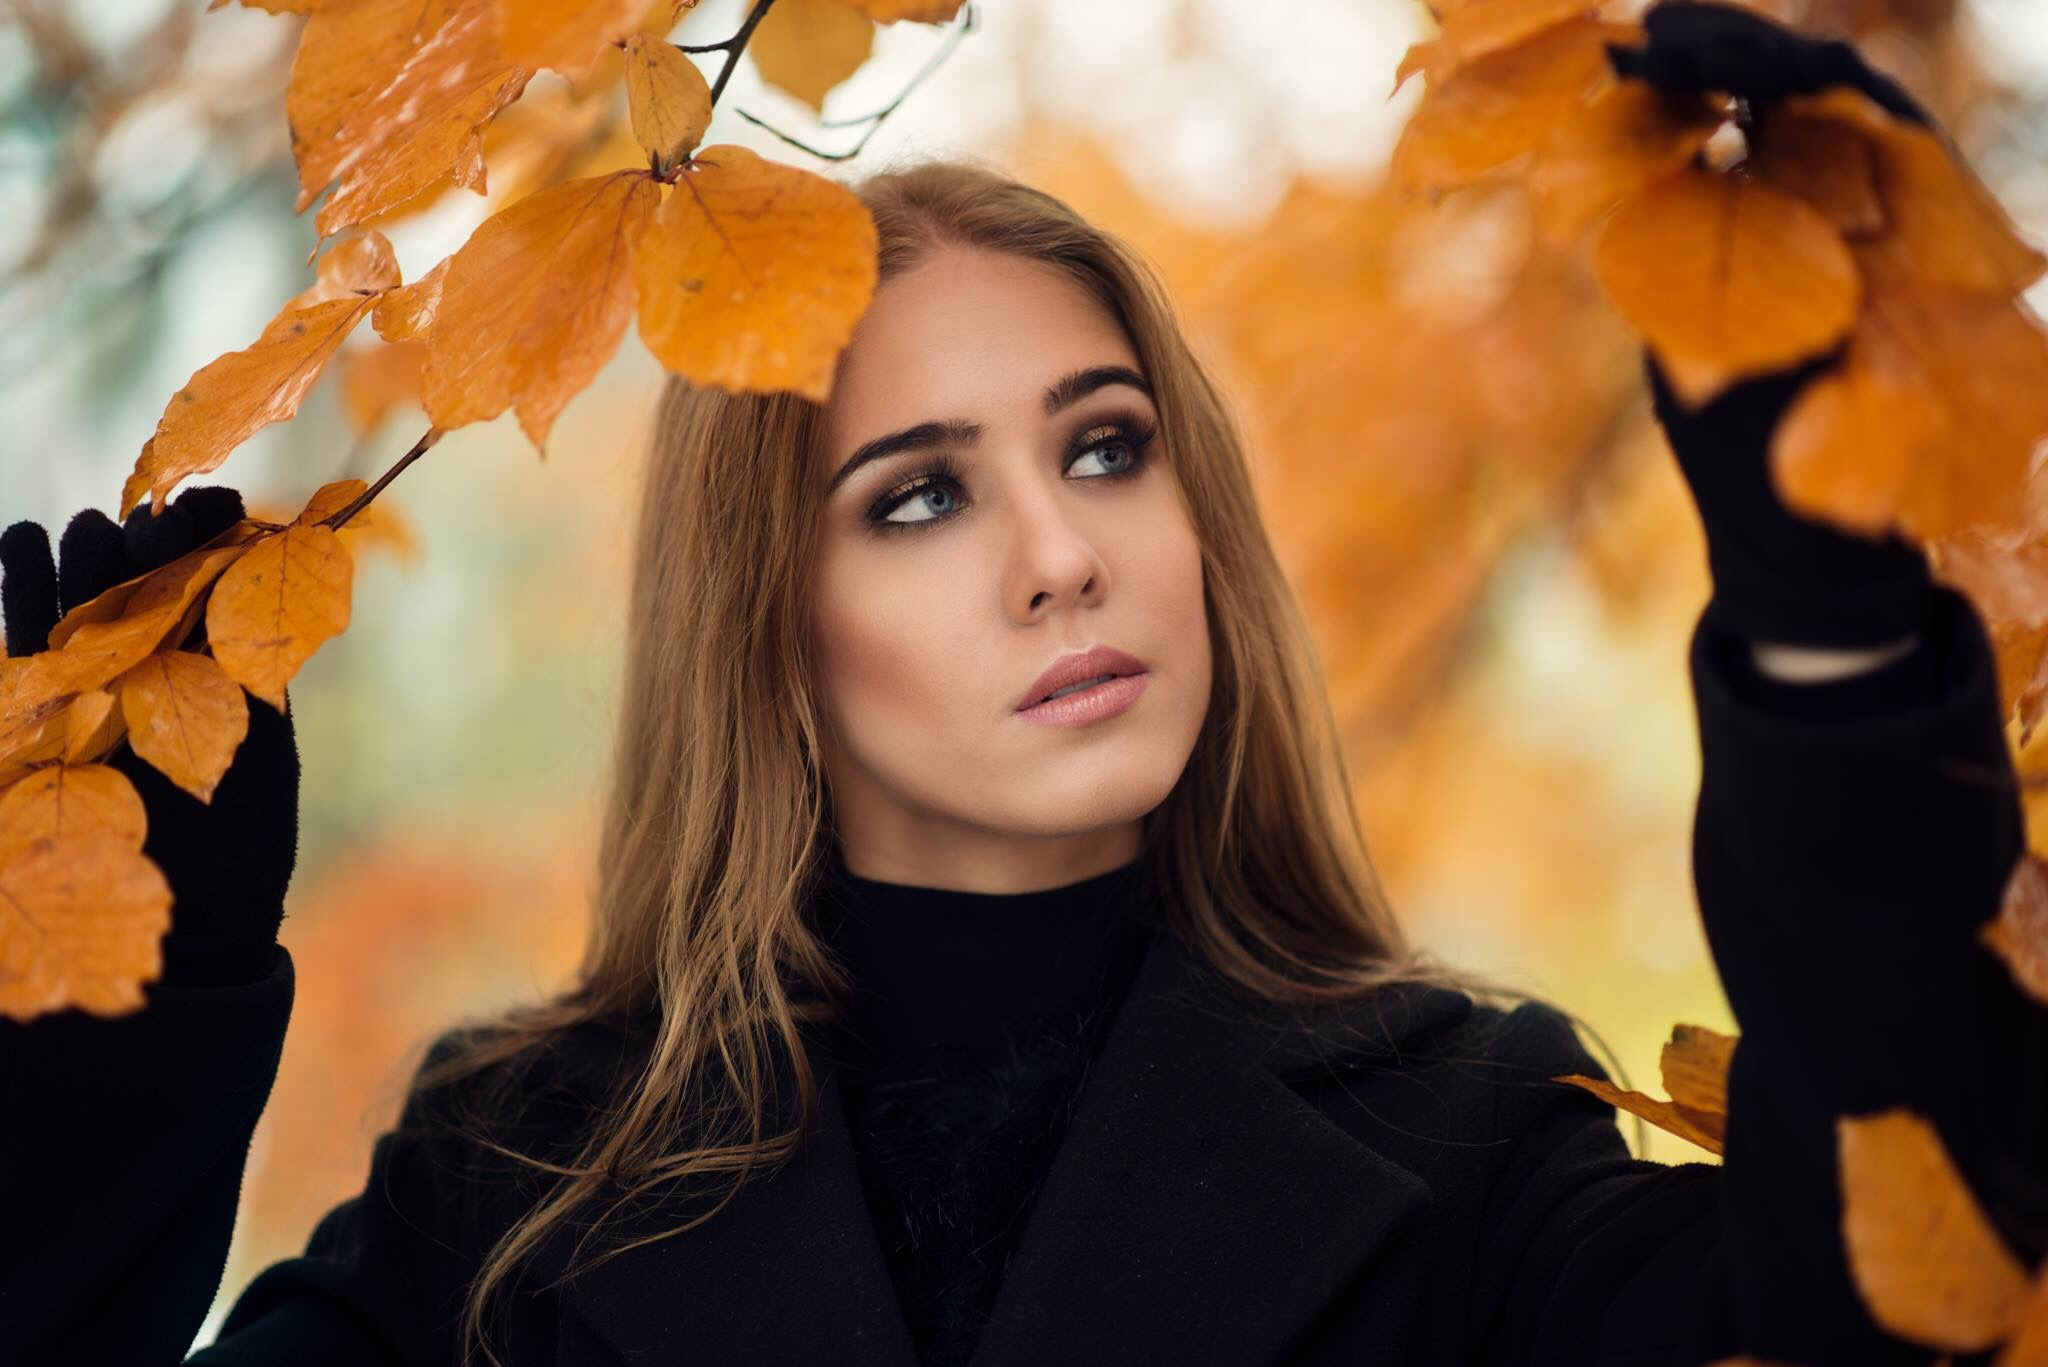 Autumn portrait by Fotonero